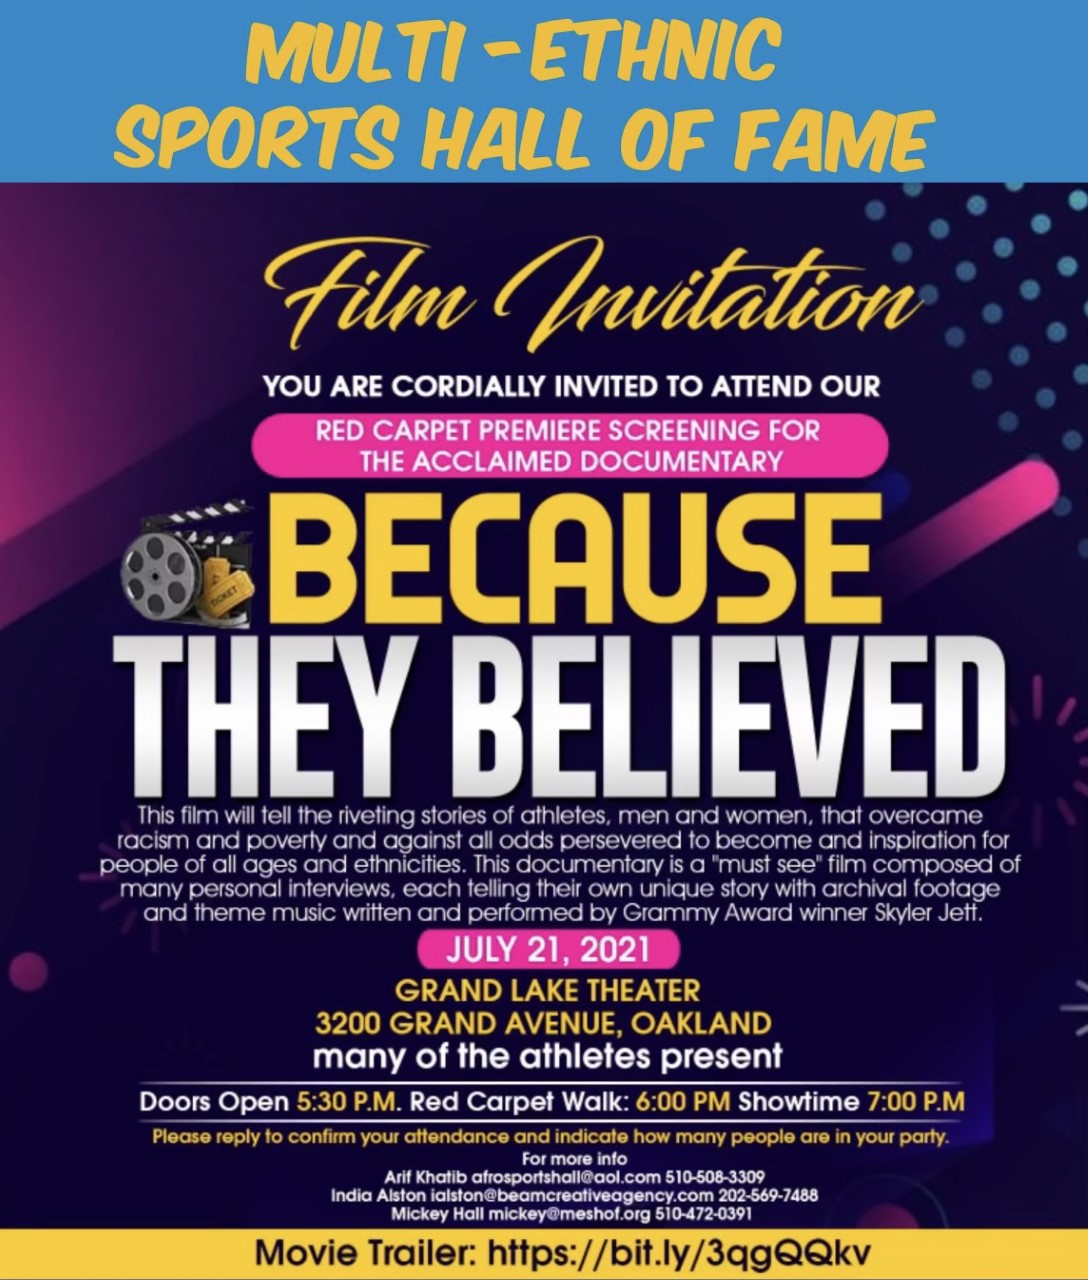 Becuase They Believed | NFL Alumni Northern California Chapter